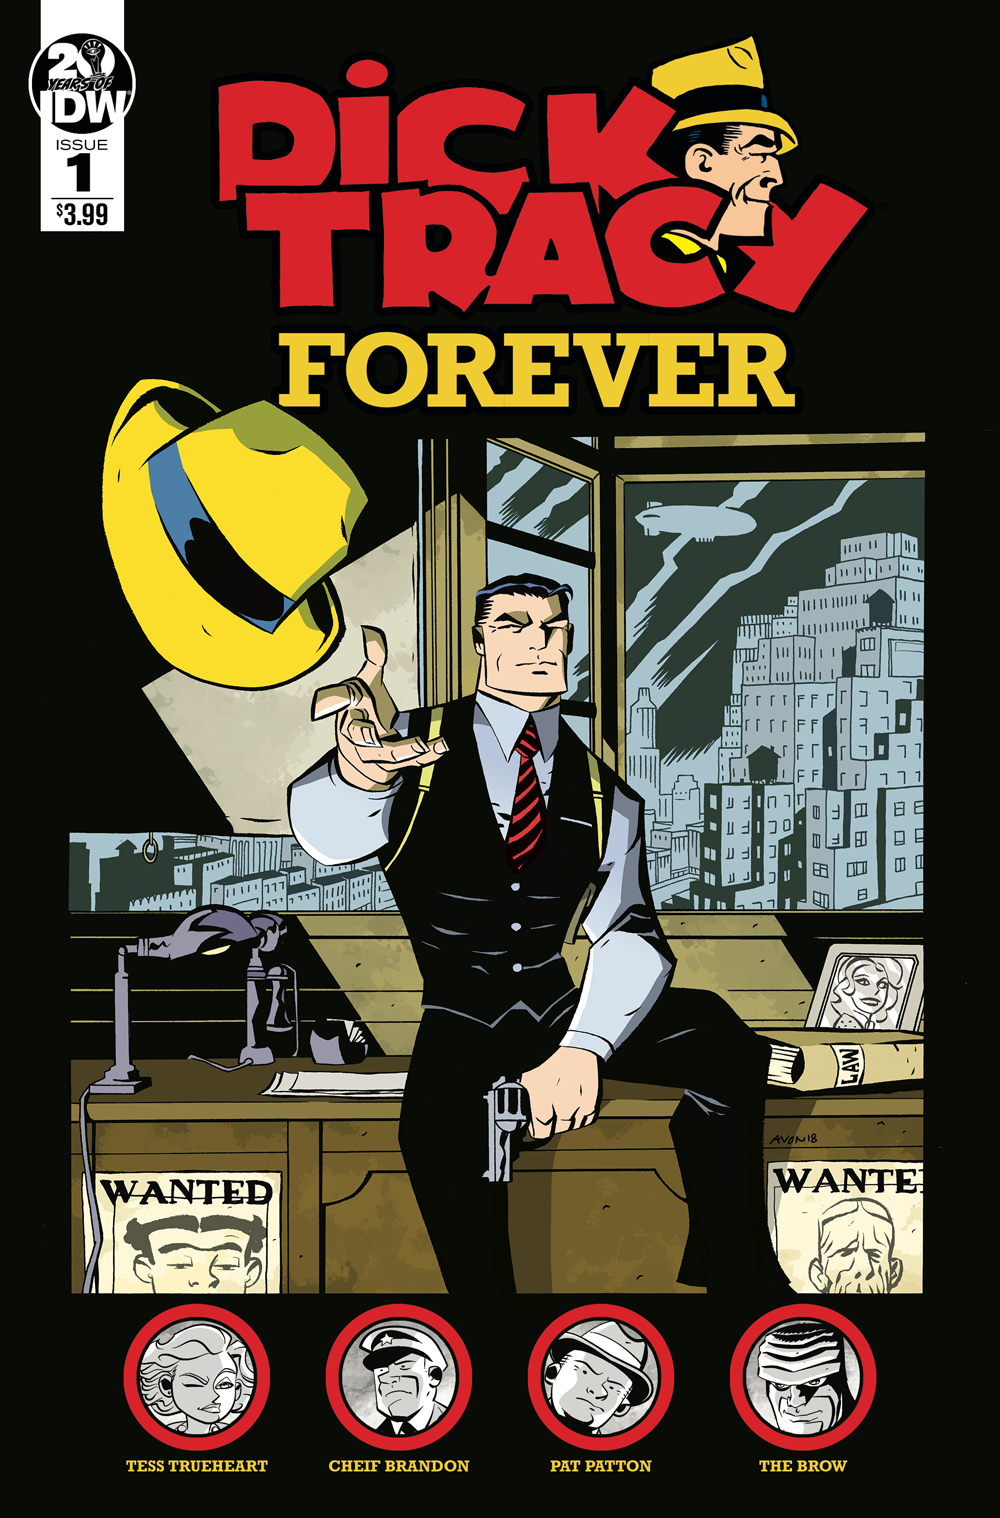 DICK TRACY FOREVER #1 CVR A OEMING